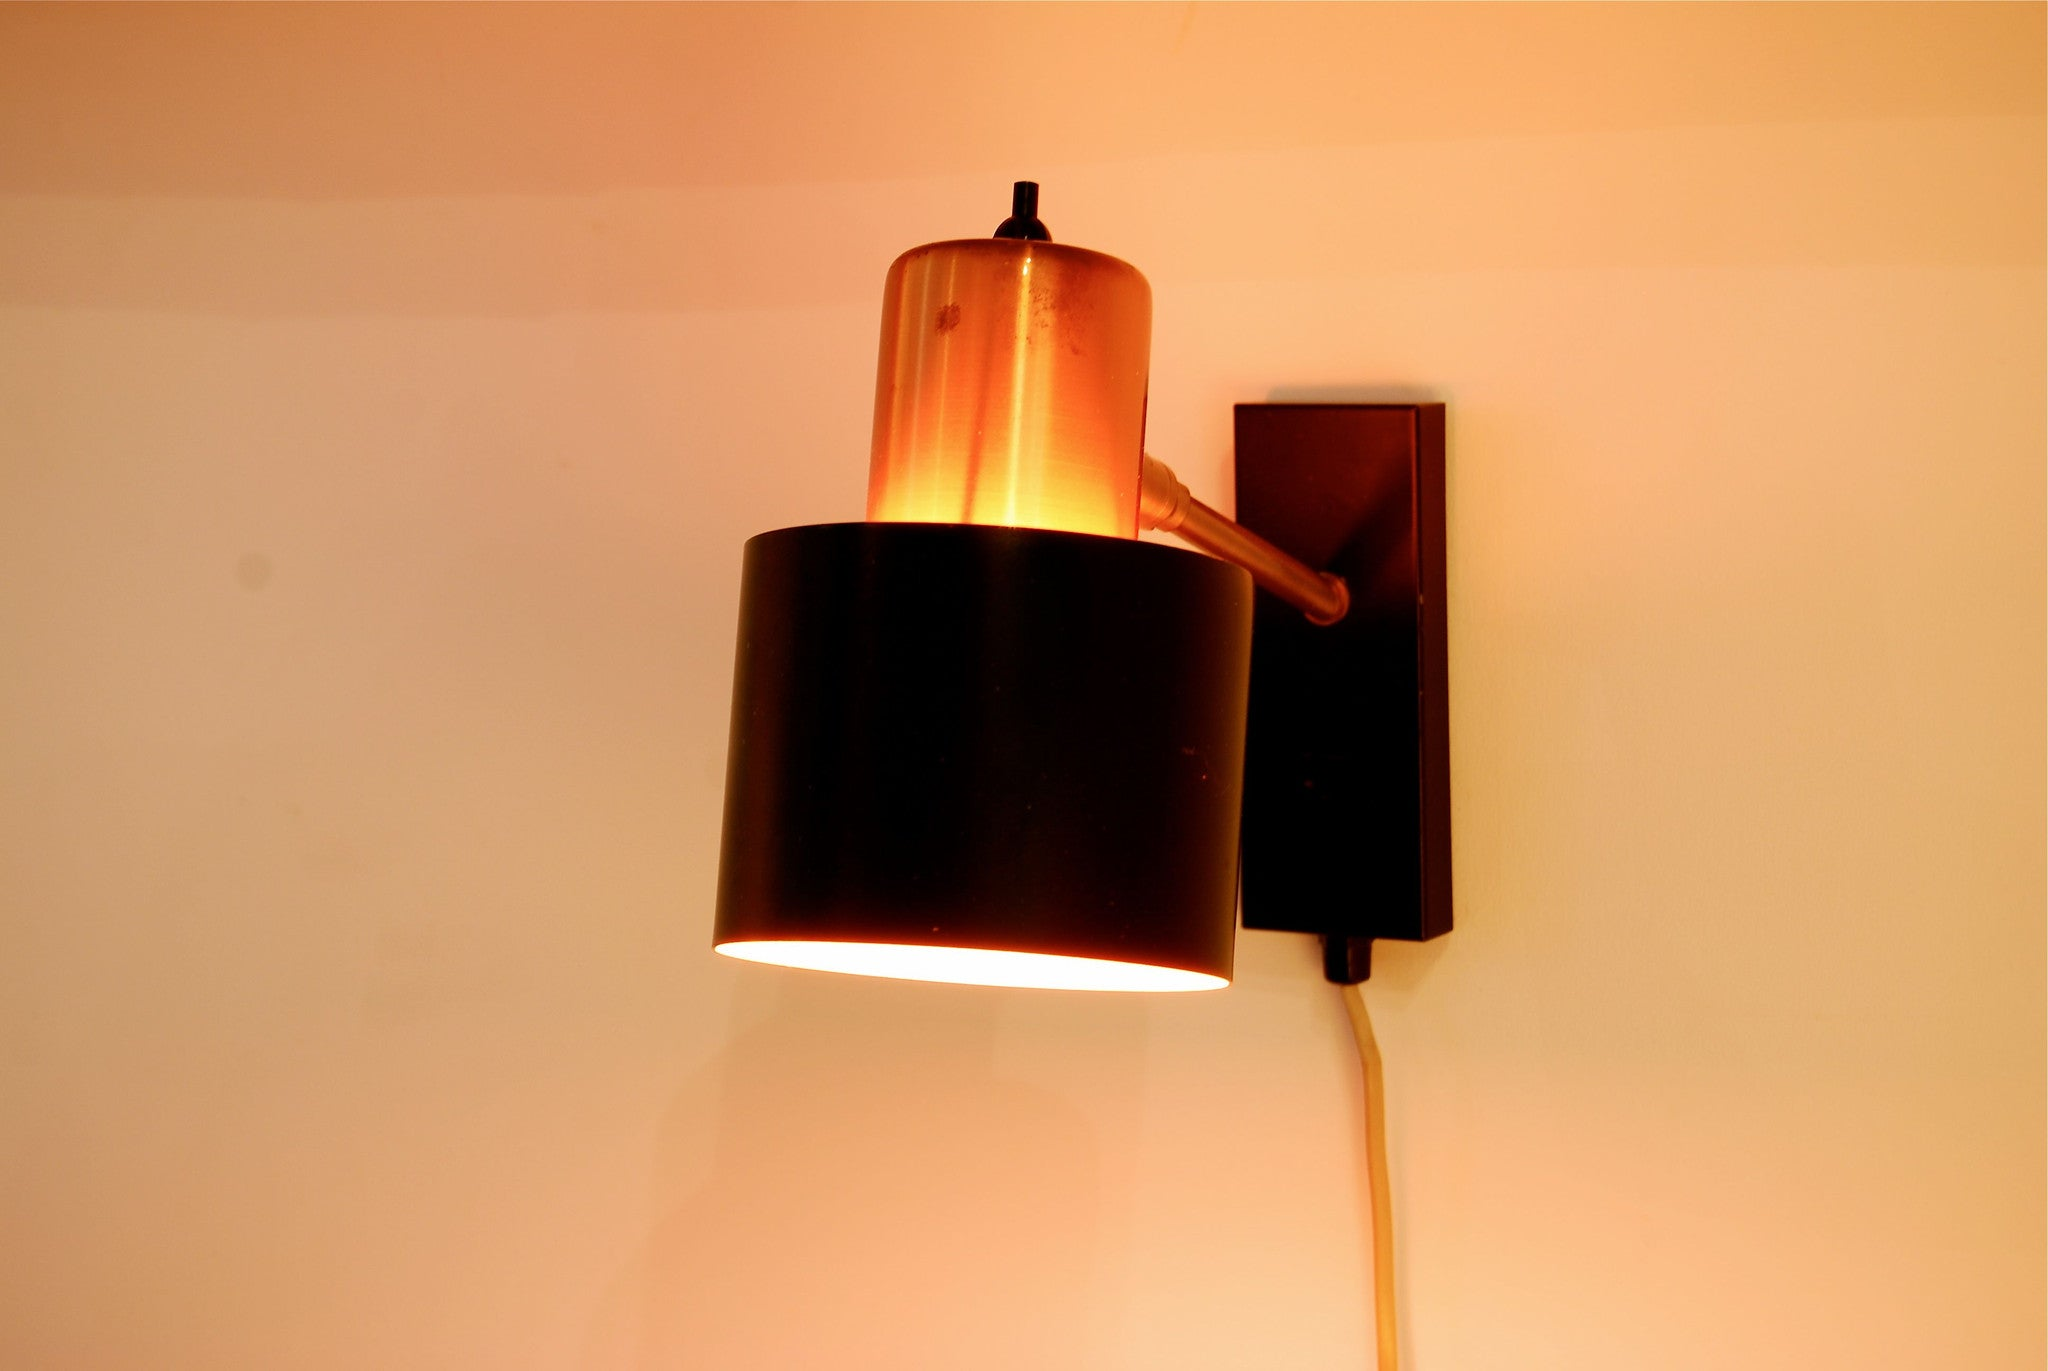 Pair of wall lamps by Jo Hammerborg for Fog & MÌürup